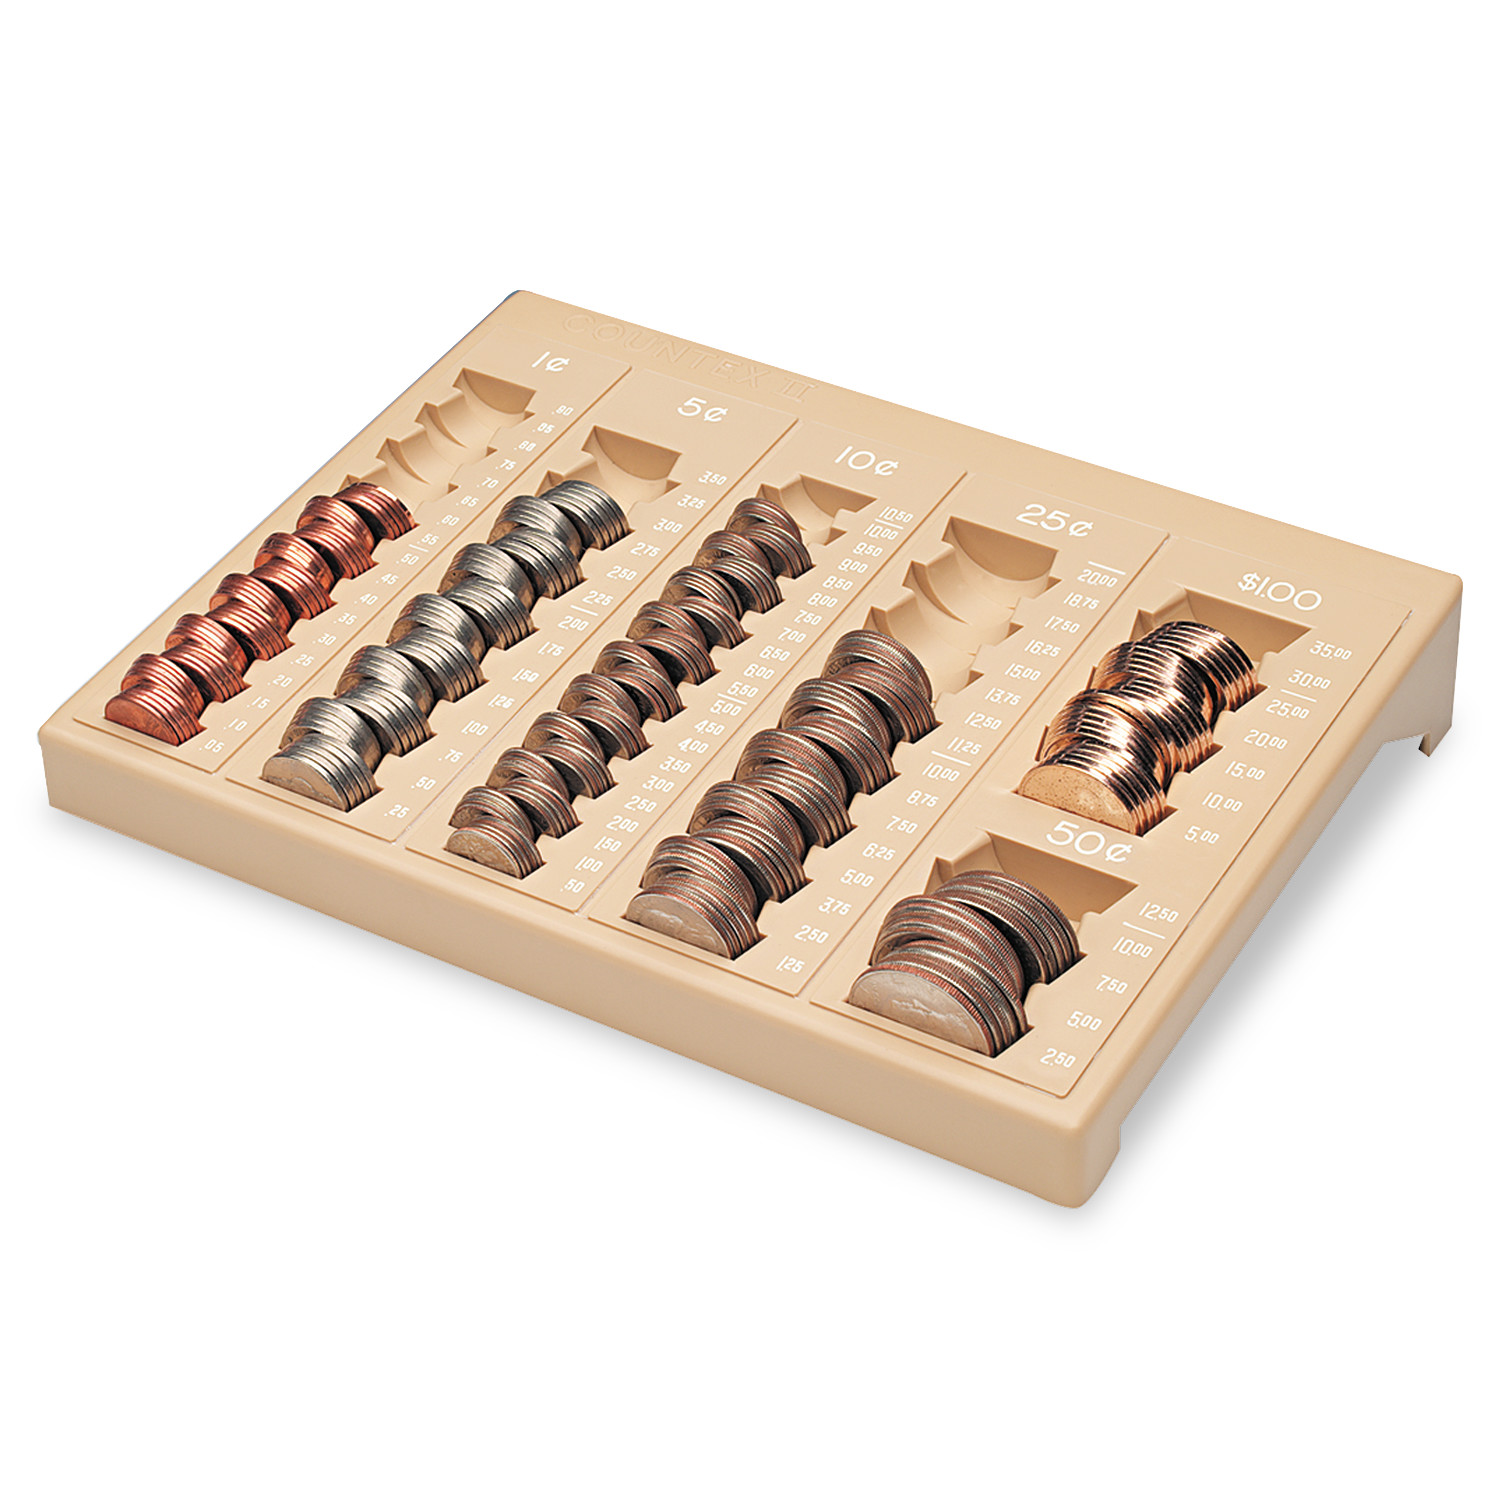 MMF Industries One-Piece Plastic Countex II Coin Tray w/6 Compartments, Sand -MMF221611003